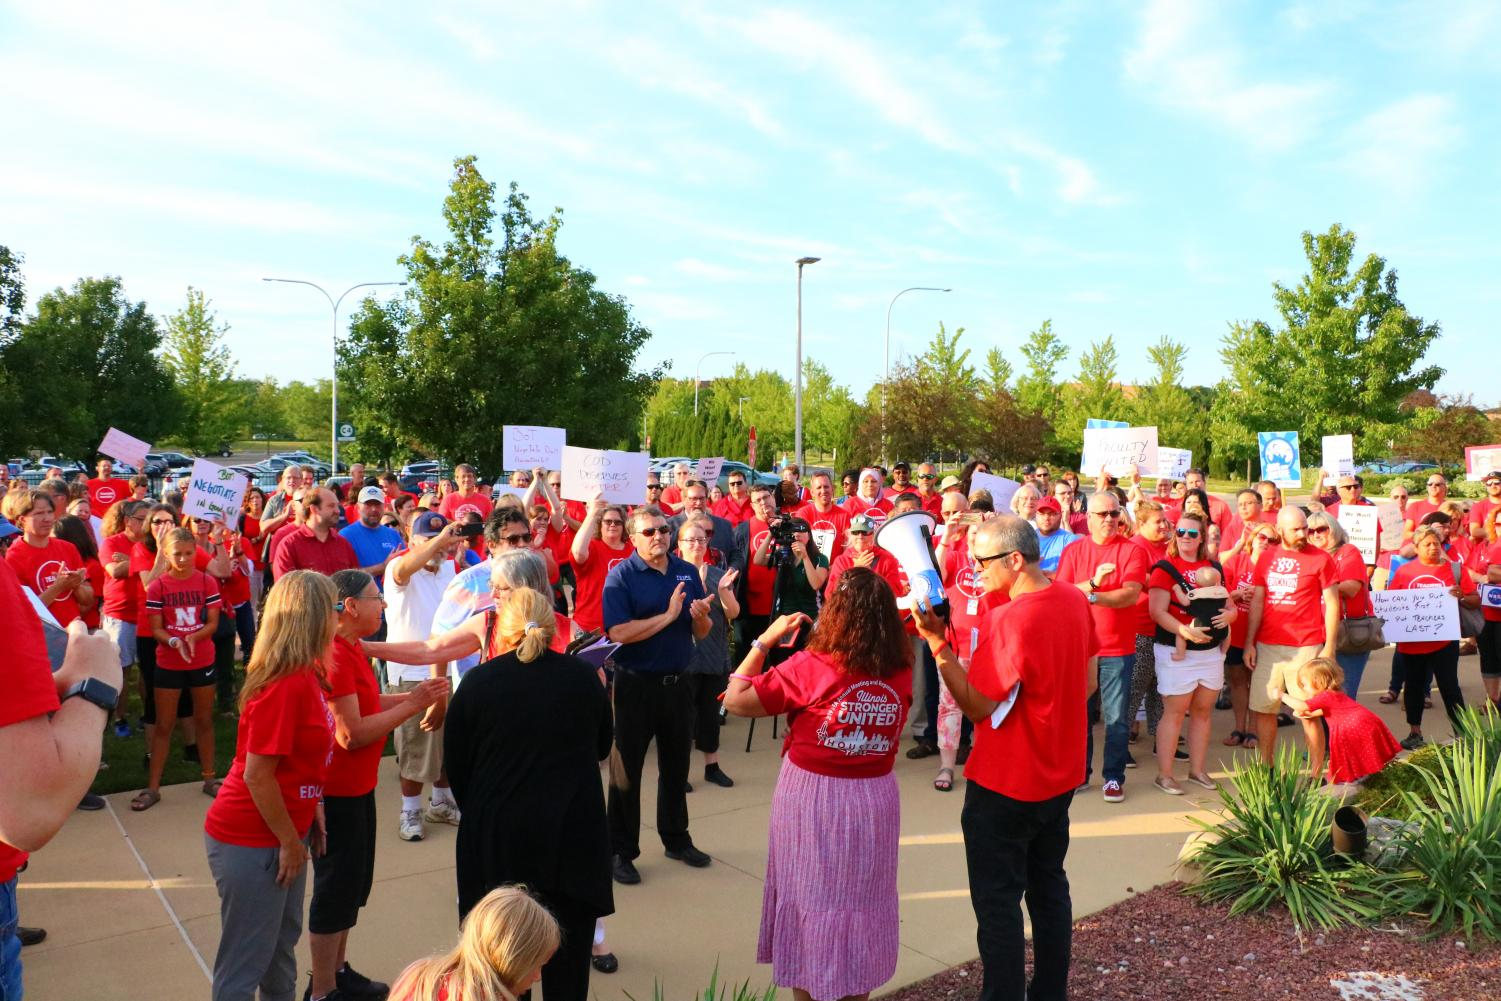 Teachers and community supporters protest outside of College of DuPage calling for more pay and increased benefits in the new full-time Faculty contract (photo by Alison Pfaff)